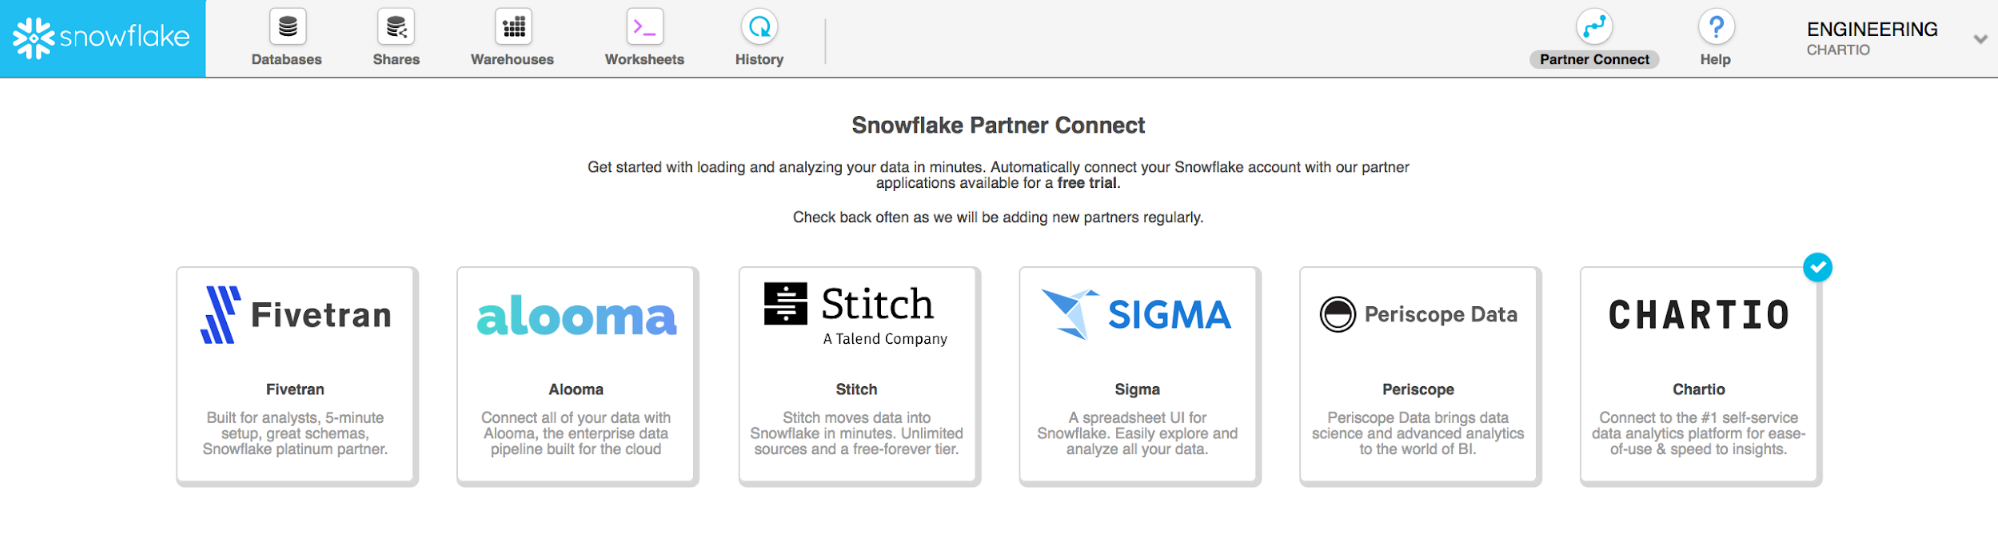 Snowflake-Partner-Connect-interface.png